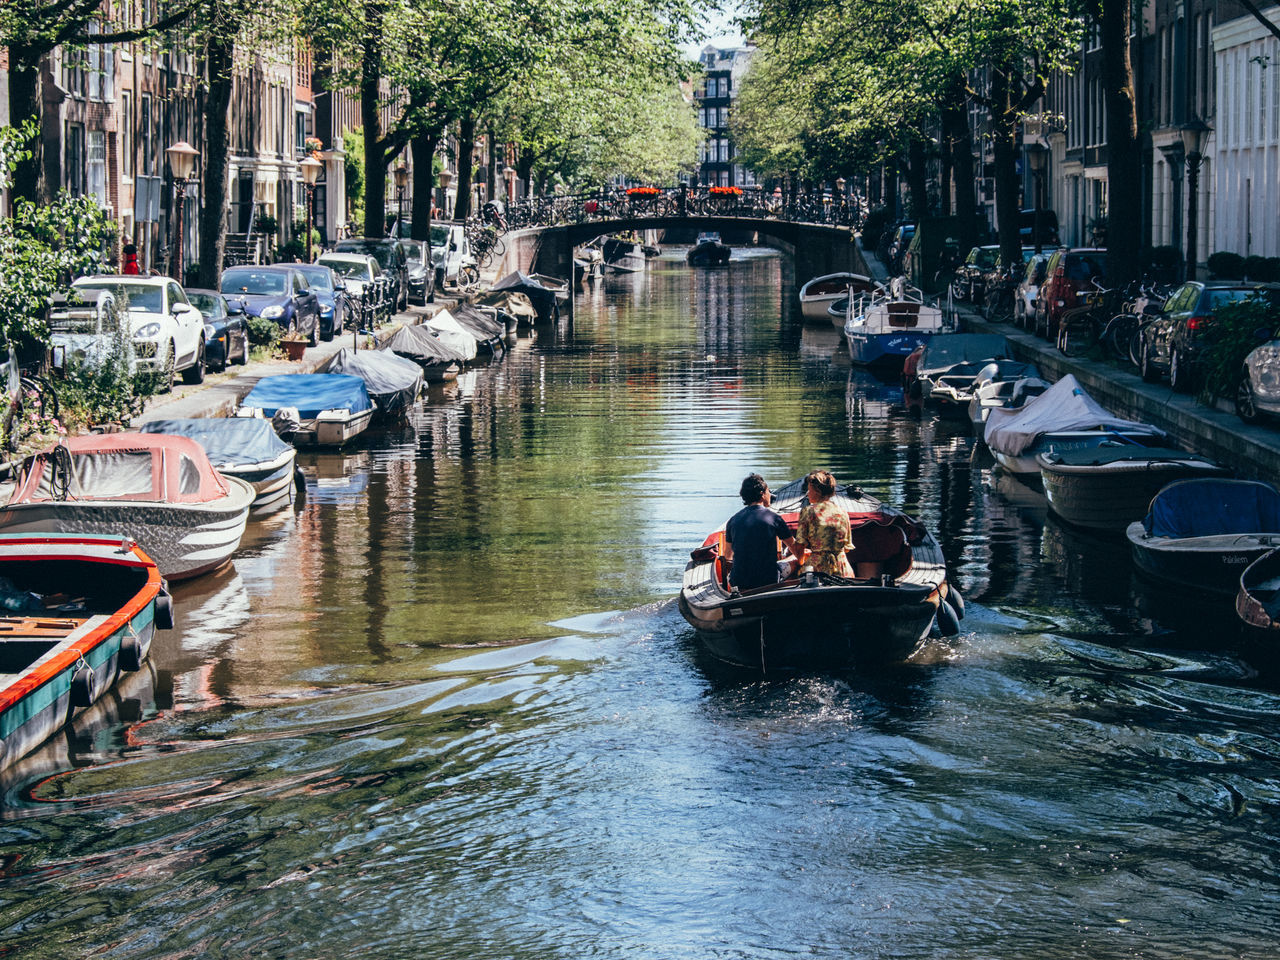 Amsterdam Architecture Bridge - Man Made Structure Building Exterior Built Structure Canal Day Gondola - Traditional Boat Leisure Activity Lifestyles Mode Of Transport Nature Nautical Vessel Netherlands Outdoors People Real People Transportation Tree Water Waterfront